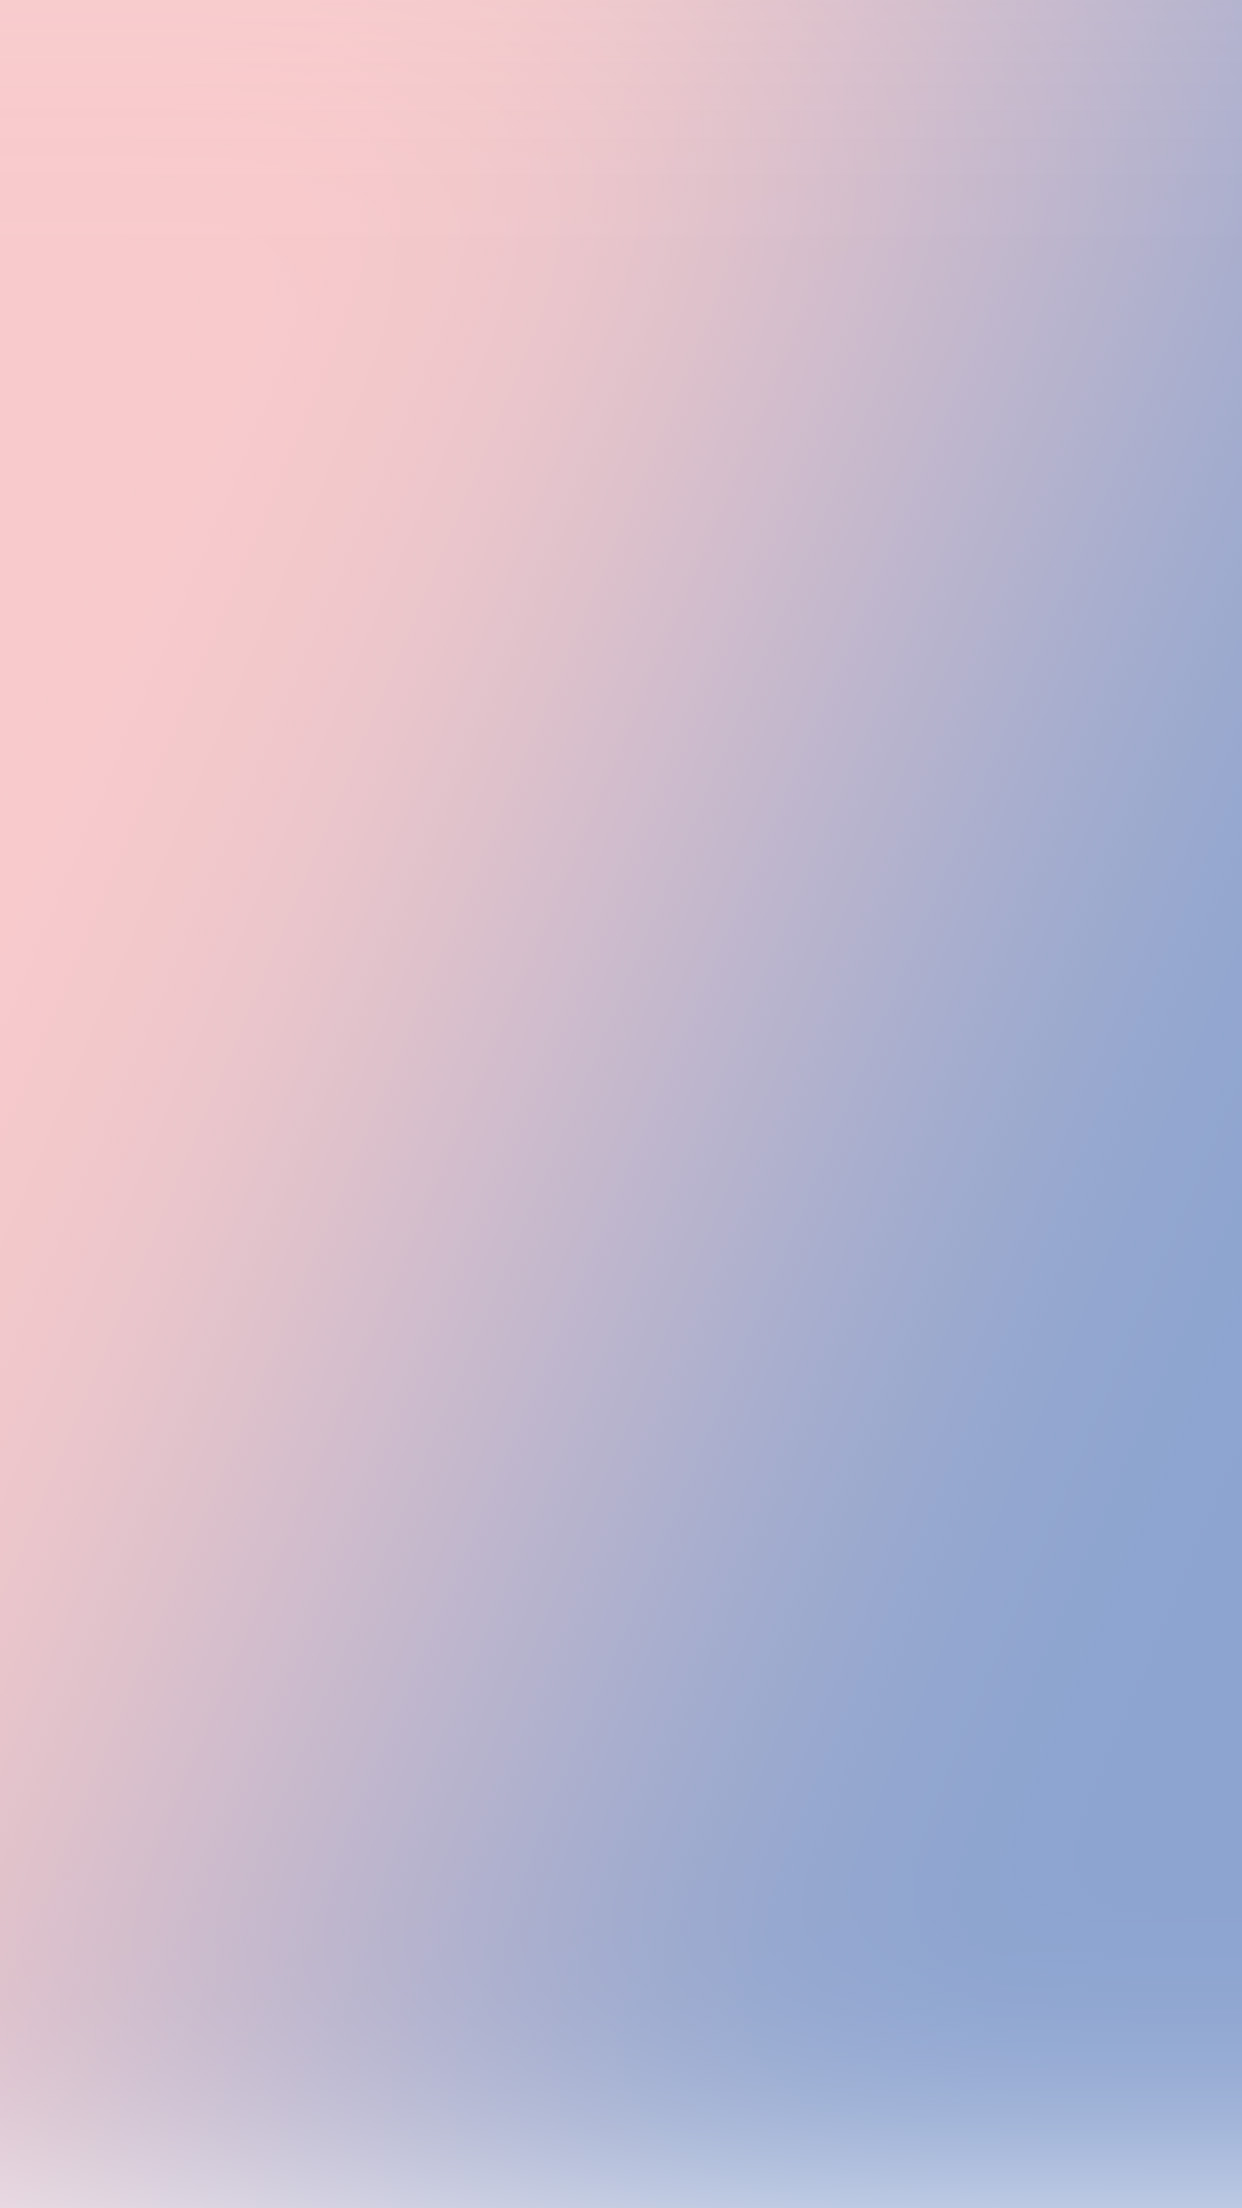 Cute Pastel Wallpaper For Iphone Si62 Panton Pink Blue Gradation Blur Wallpaper